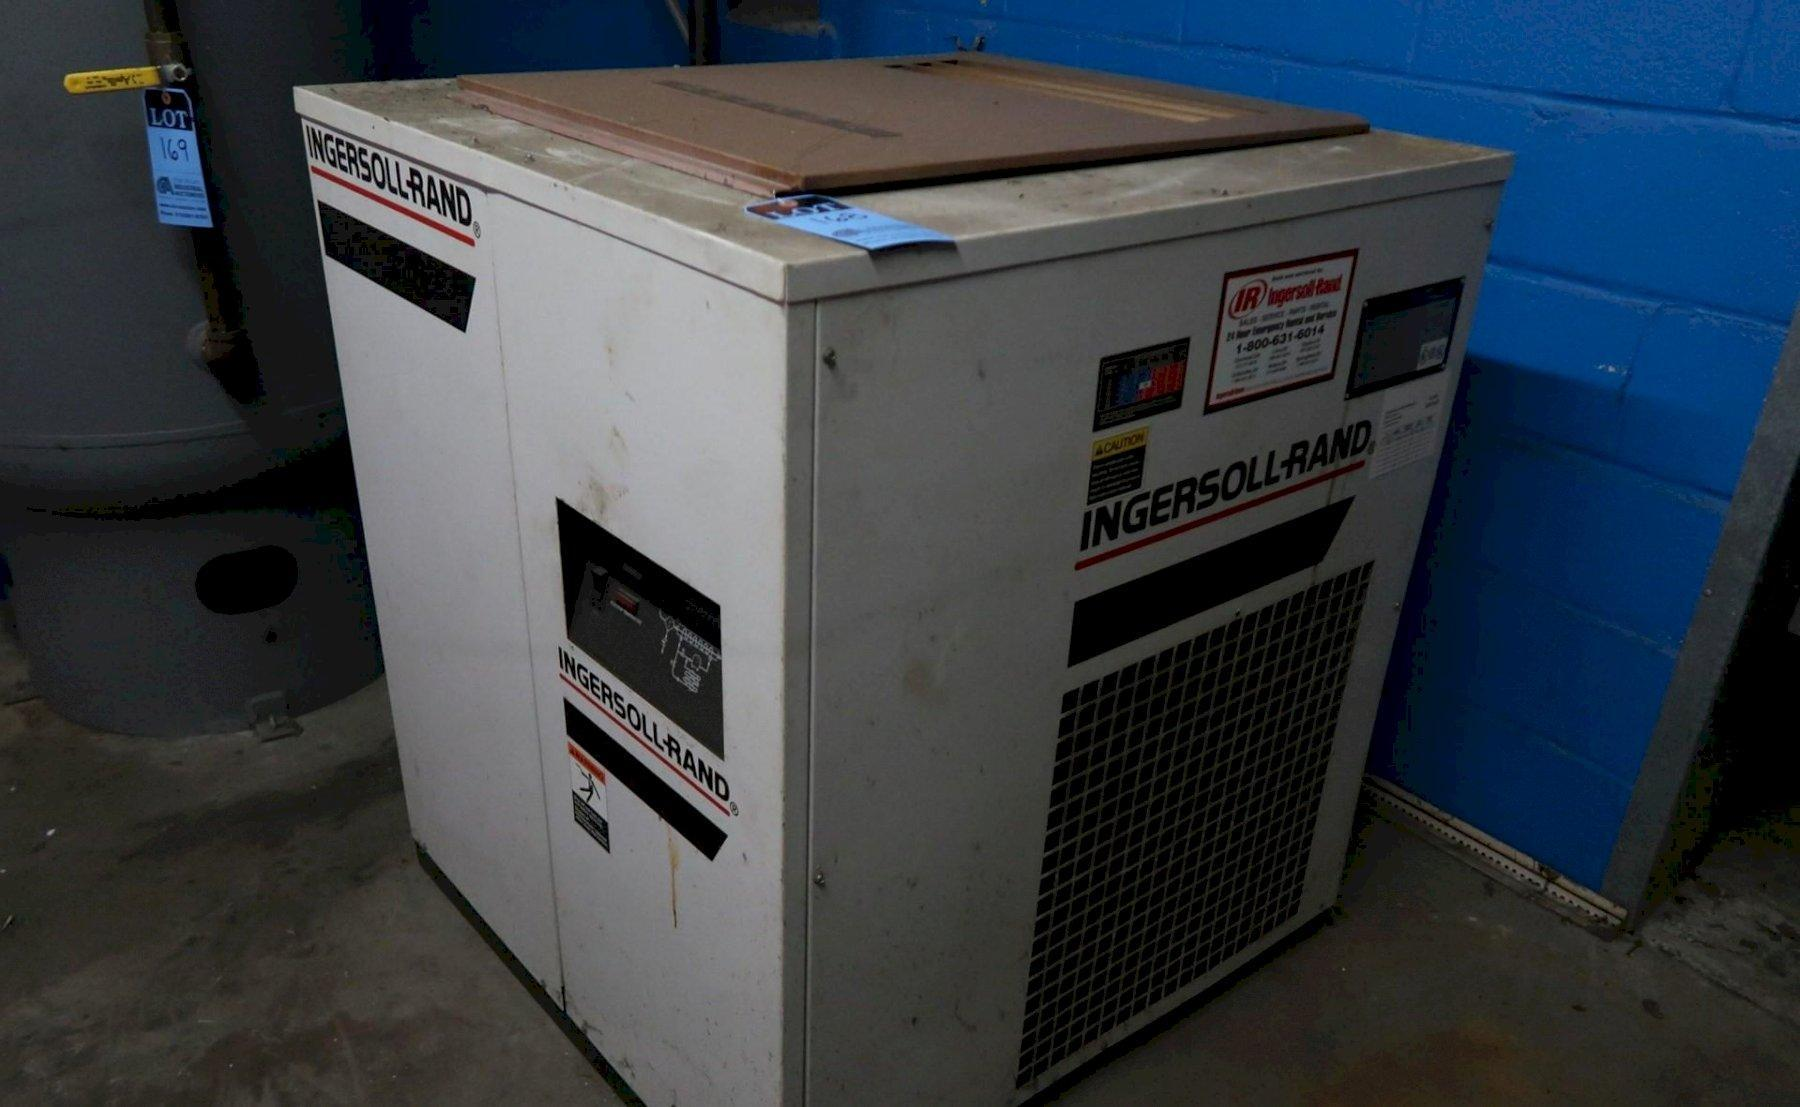 INGERSOL RAND MODEL DXR200 COMPRESSED AIR DRYER, S/N 98KDXR3887, New 10/98.